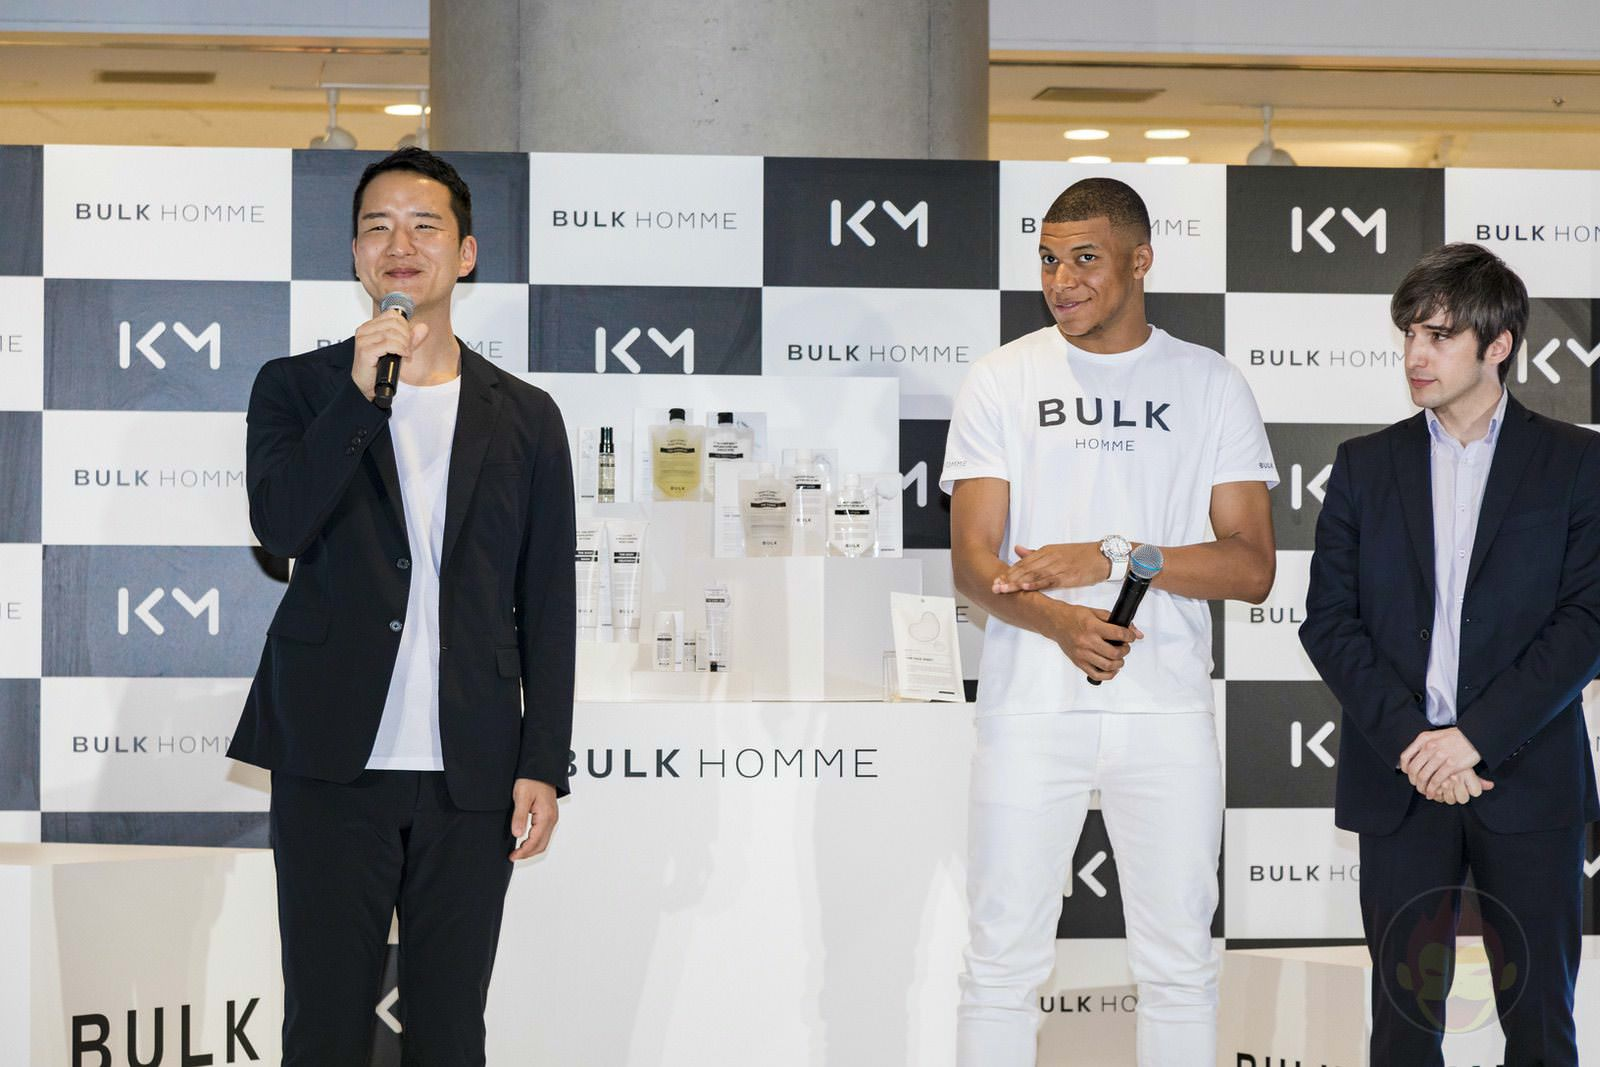 BULK HOMME Pop Up Store 17